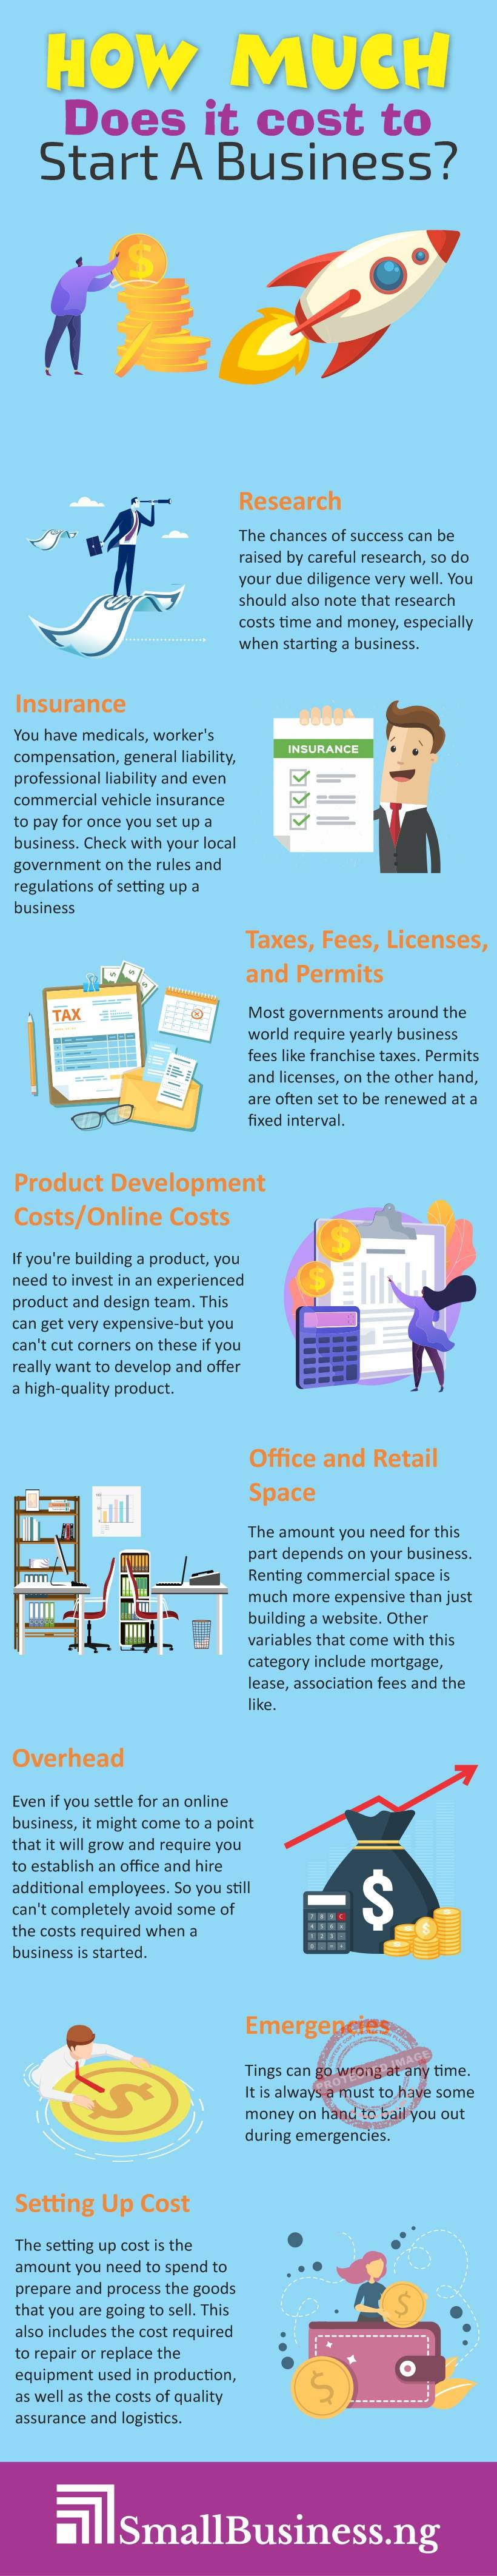 How Much Does It Cost To Start A Business Infographic